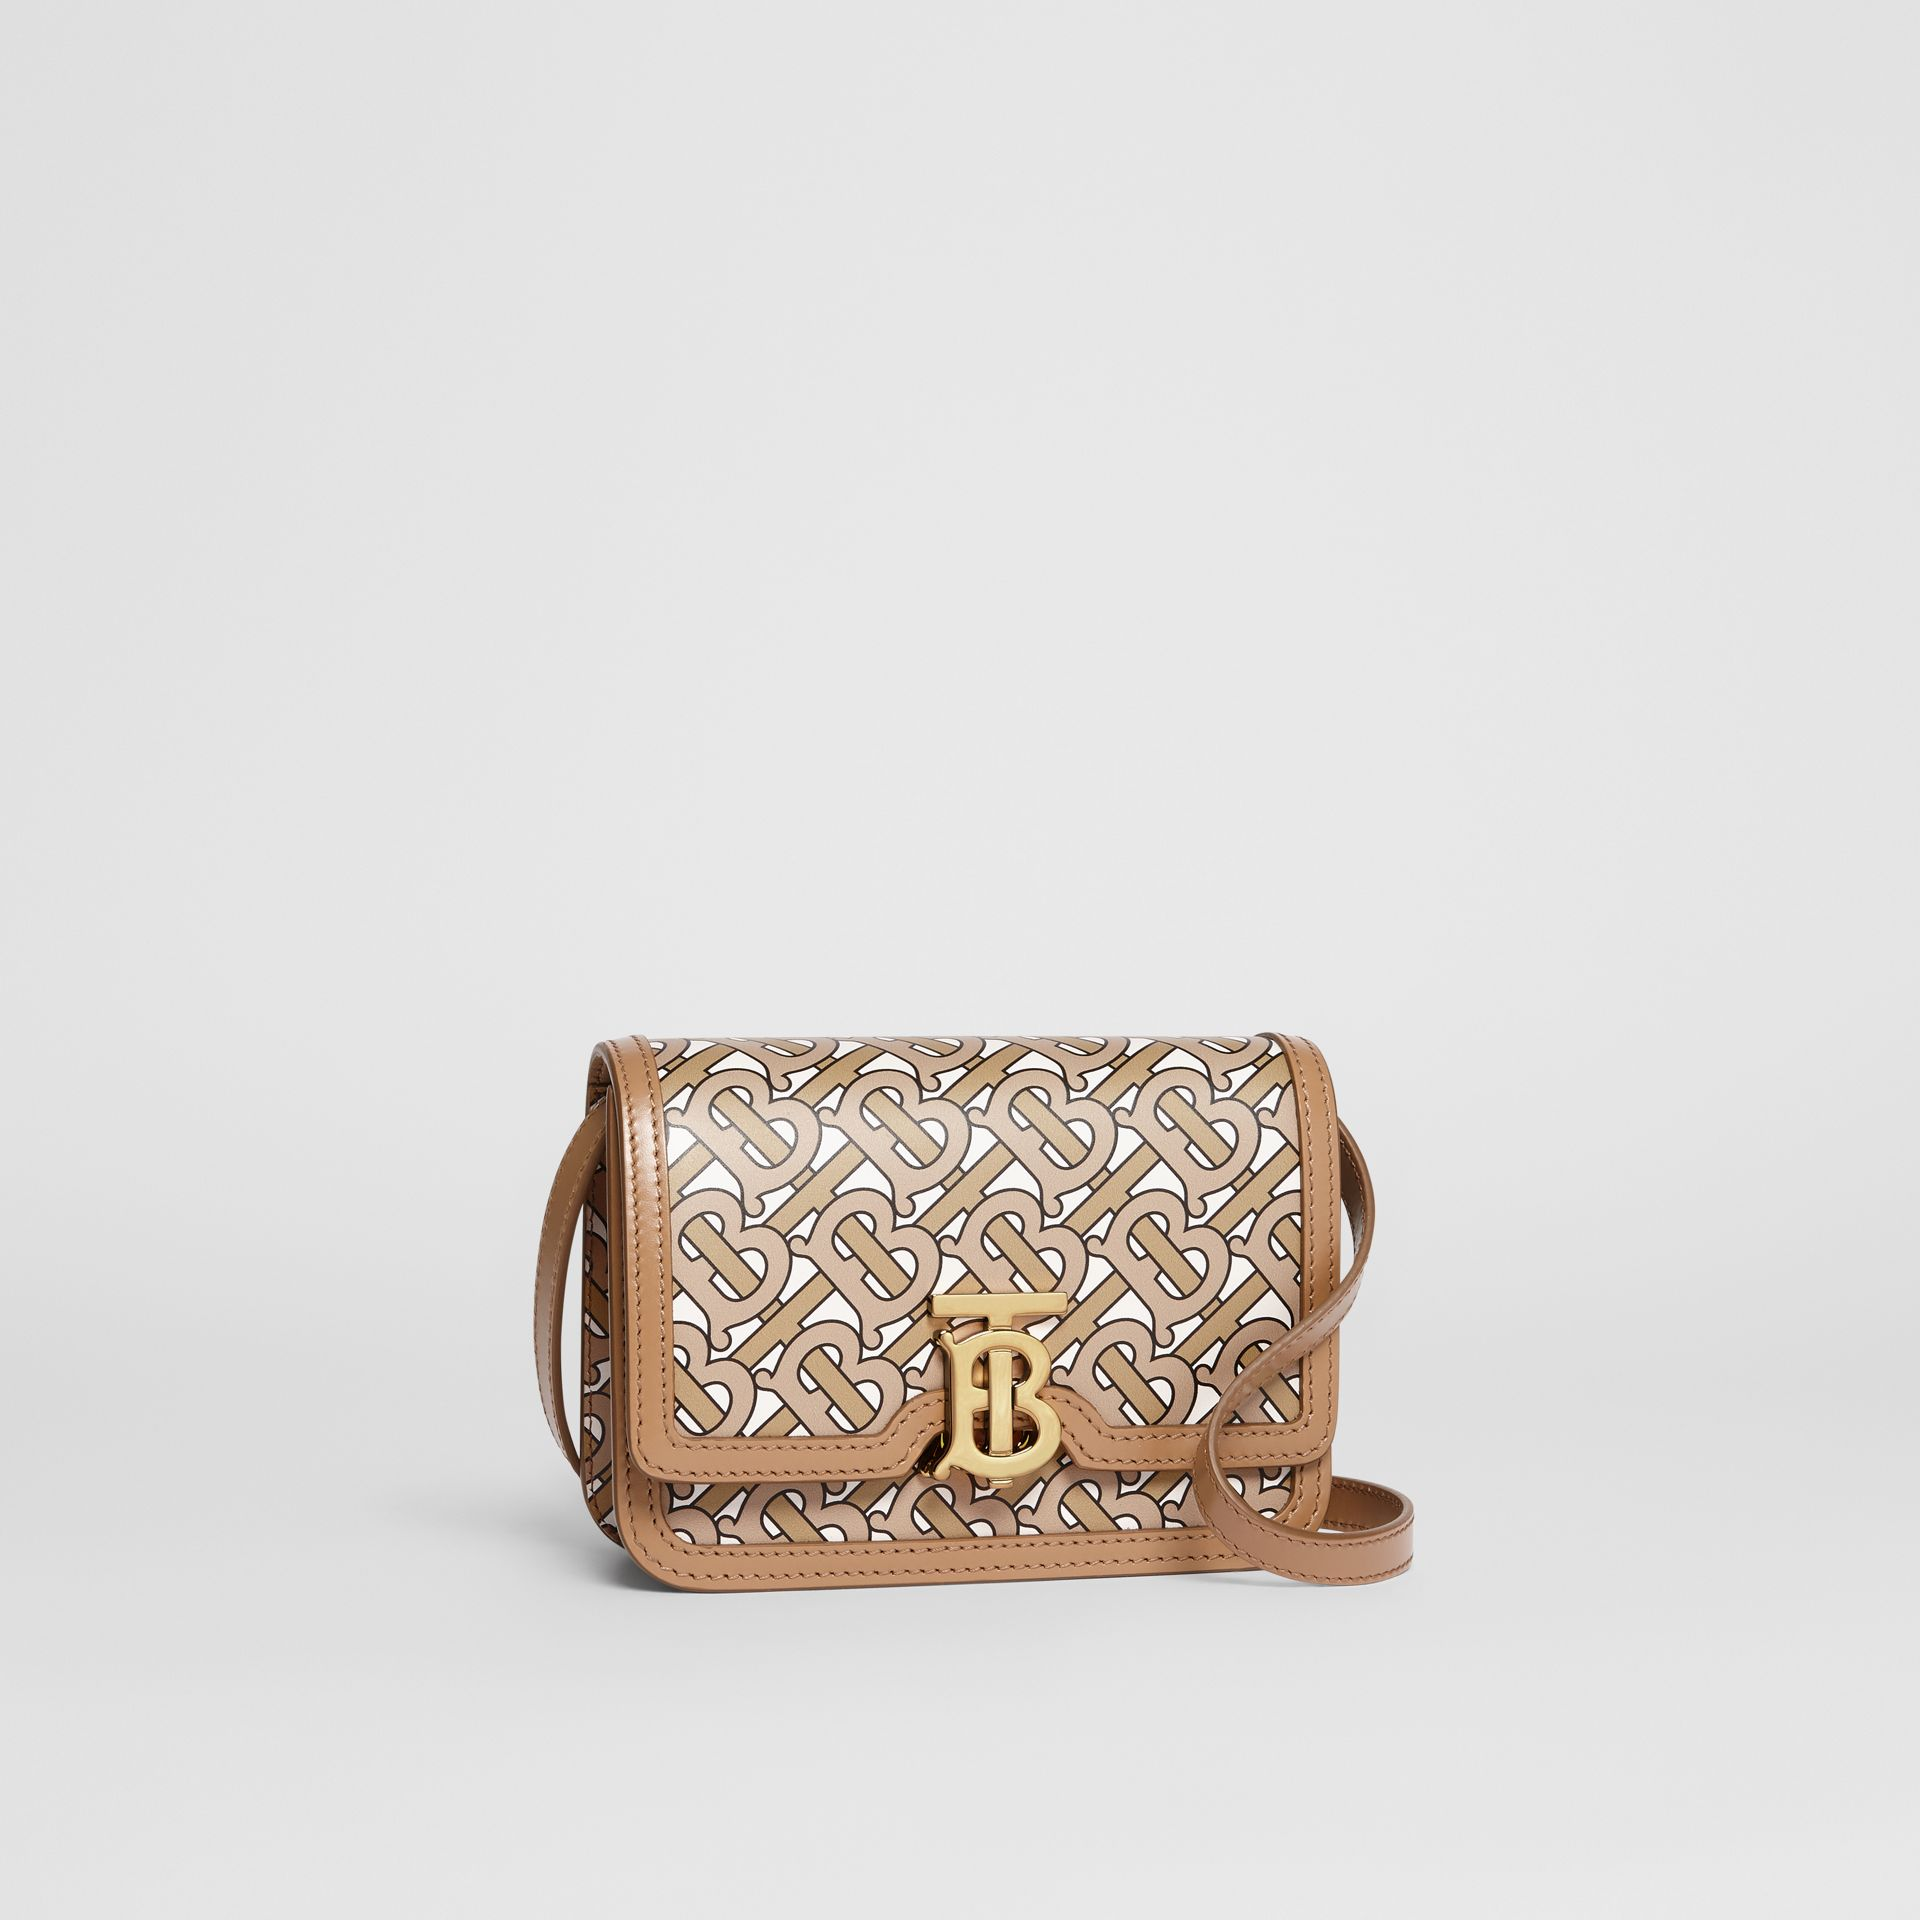 Mini Monogram Print Leather TB Bag in Beige - Women | Burberry United Kingdom - gallery image 6